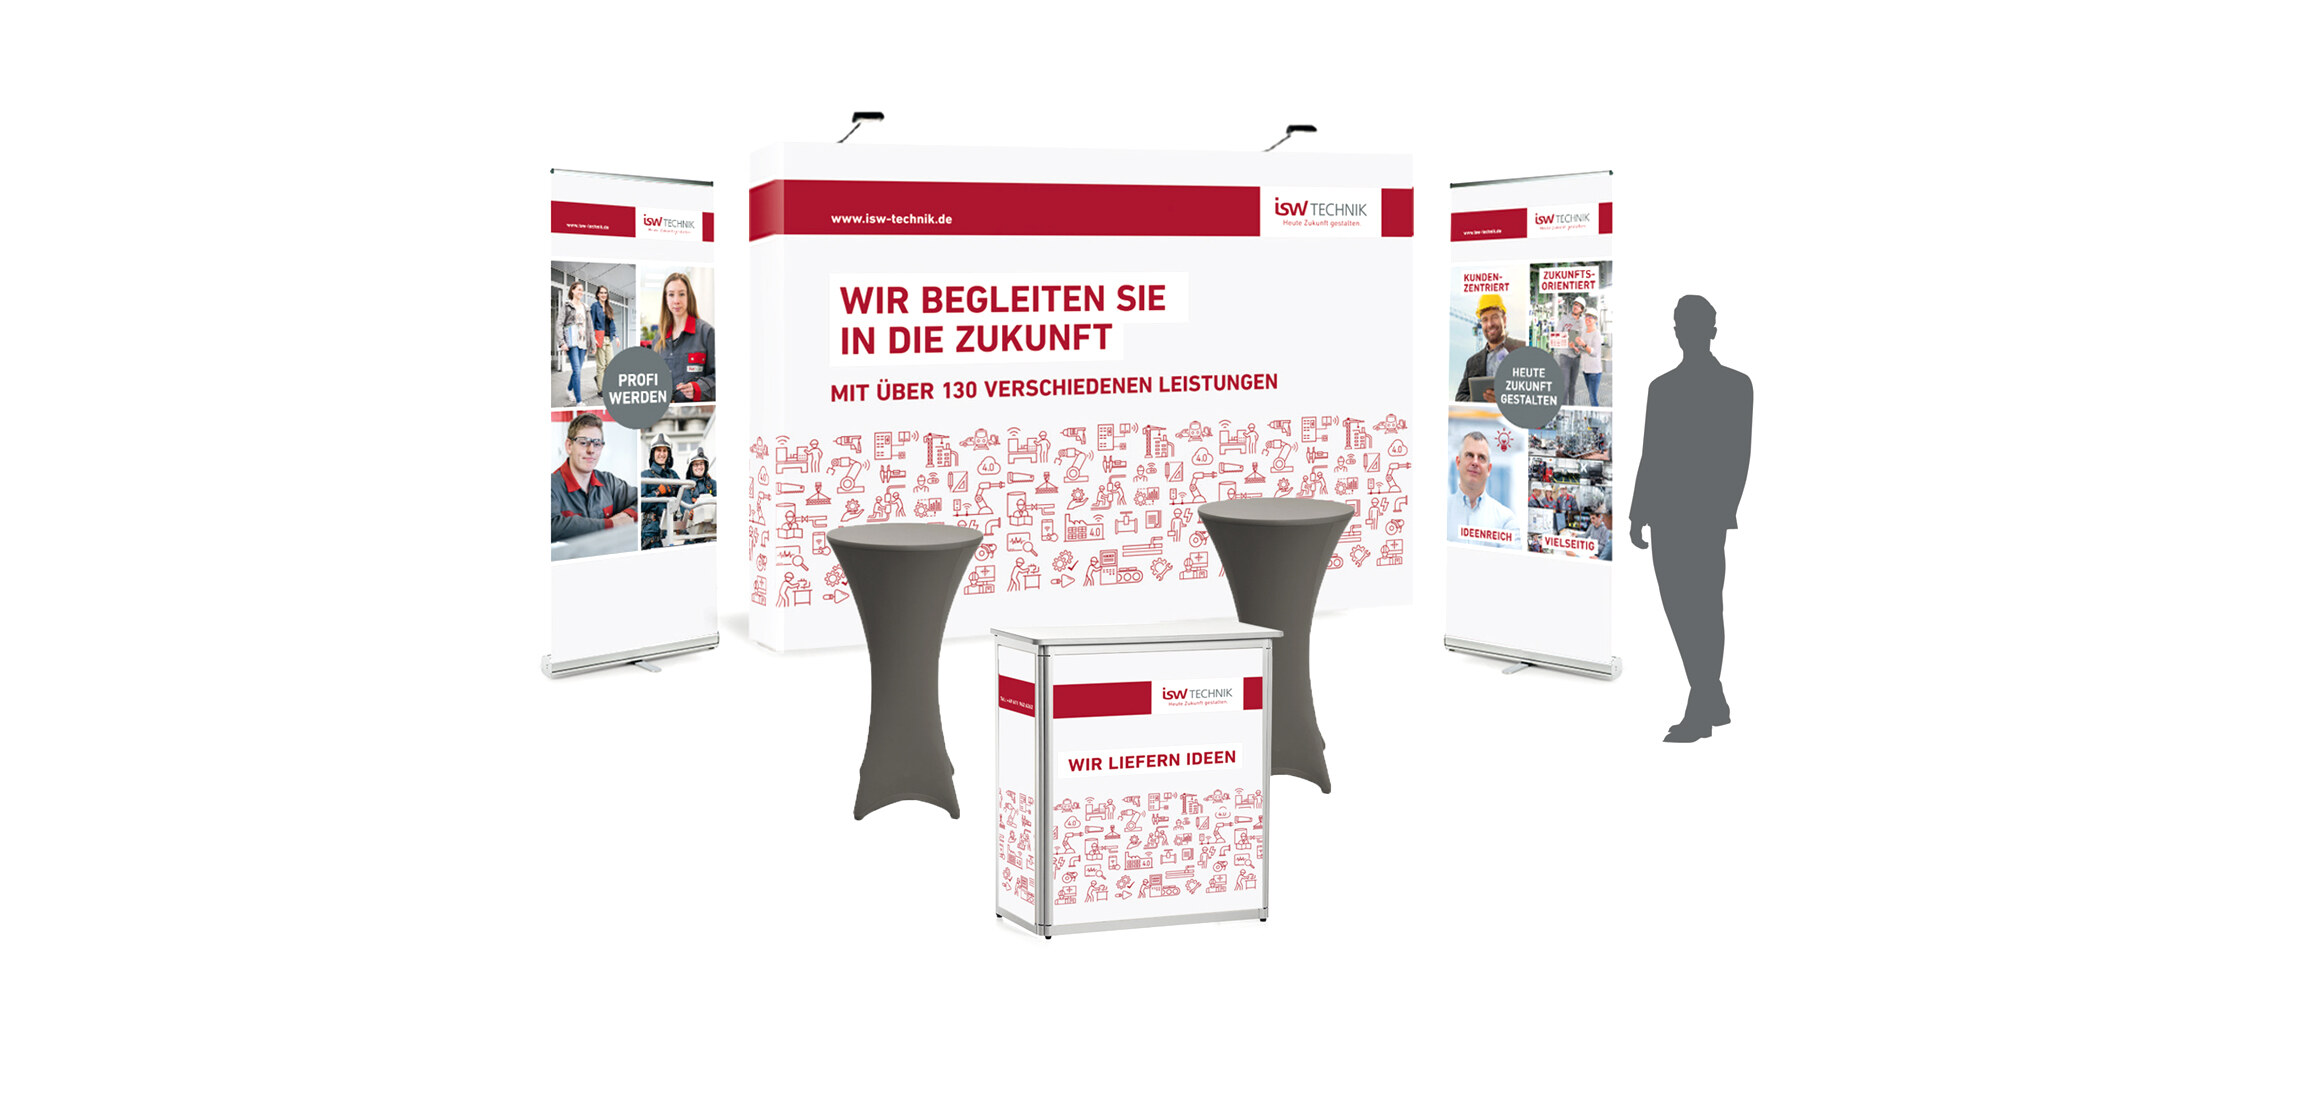 ISW-TECHNIK Messestand